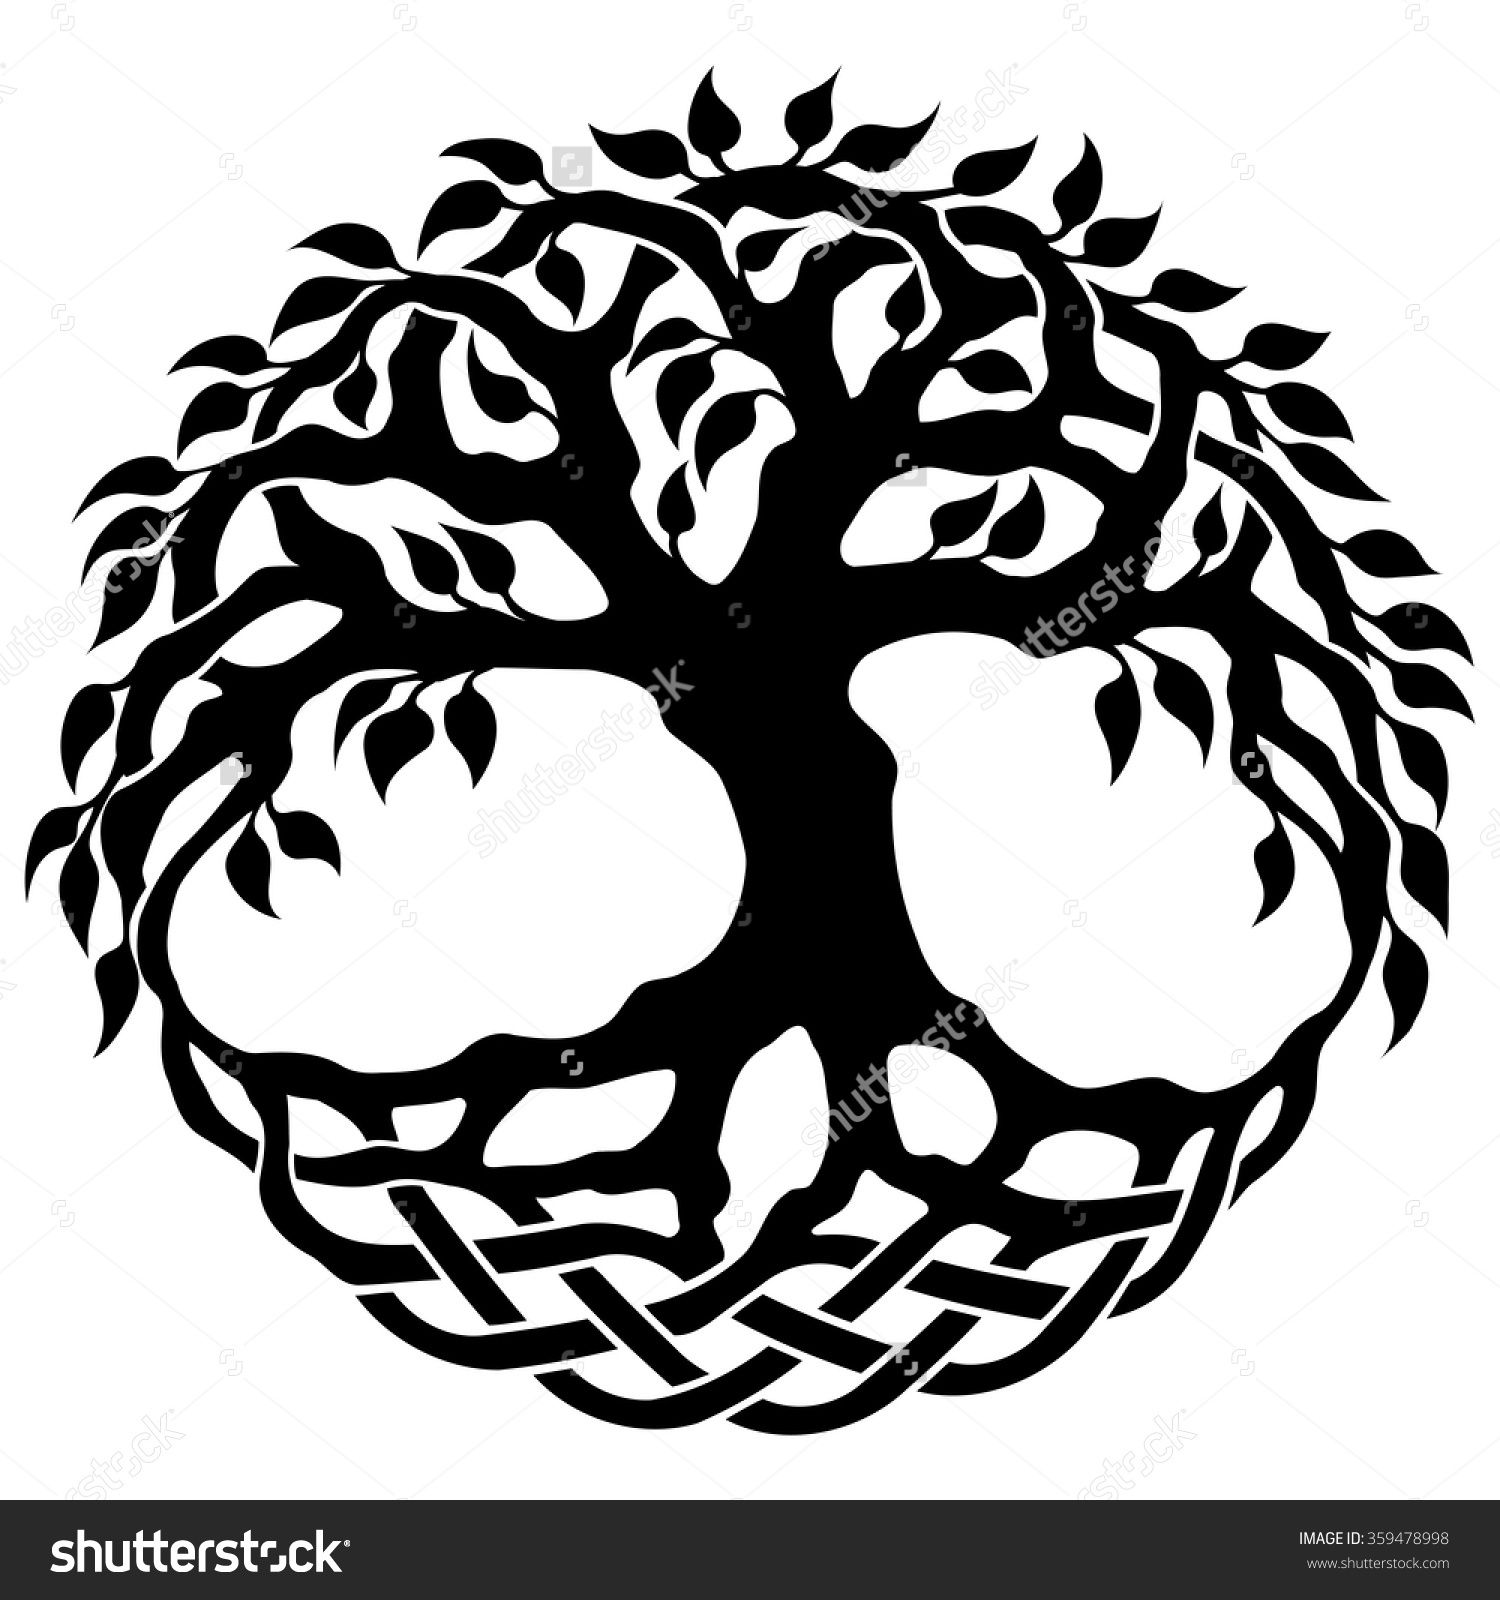 Celtic tree of life clipart ClipartFest Tree of life